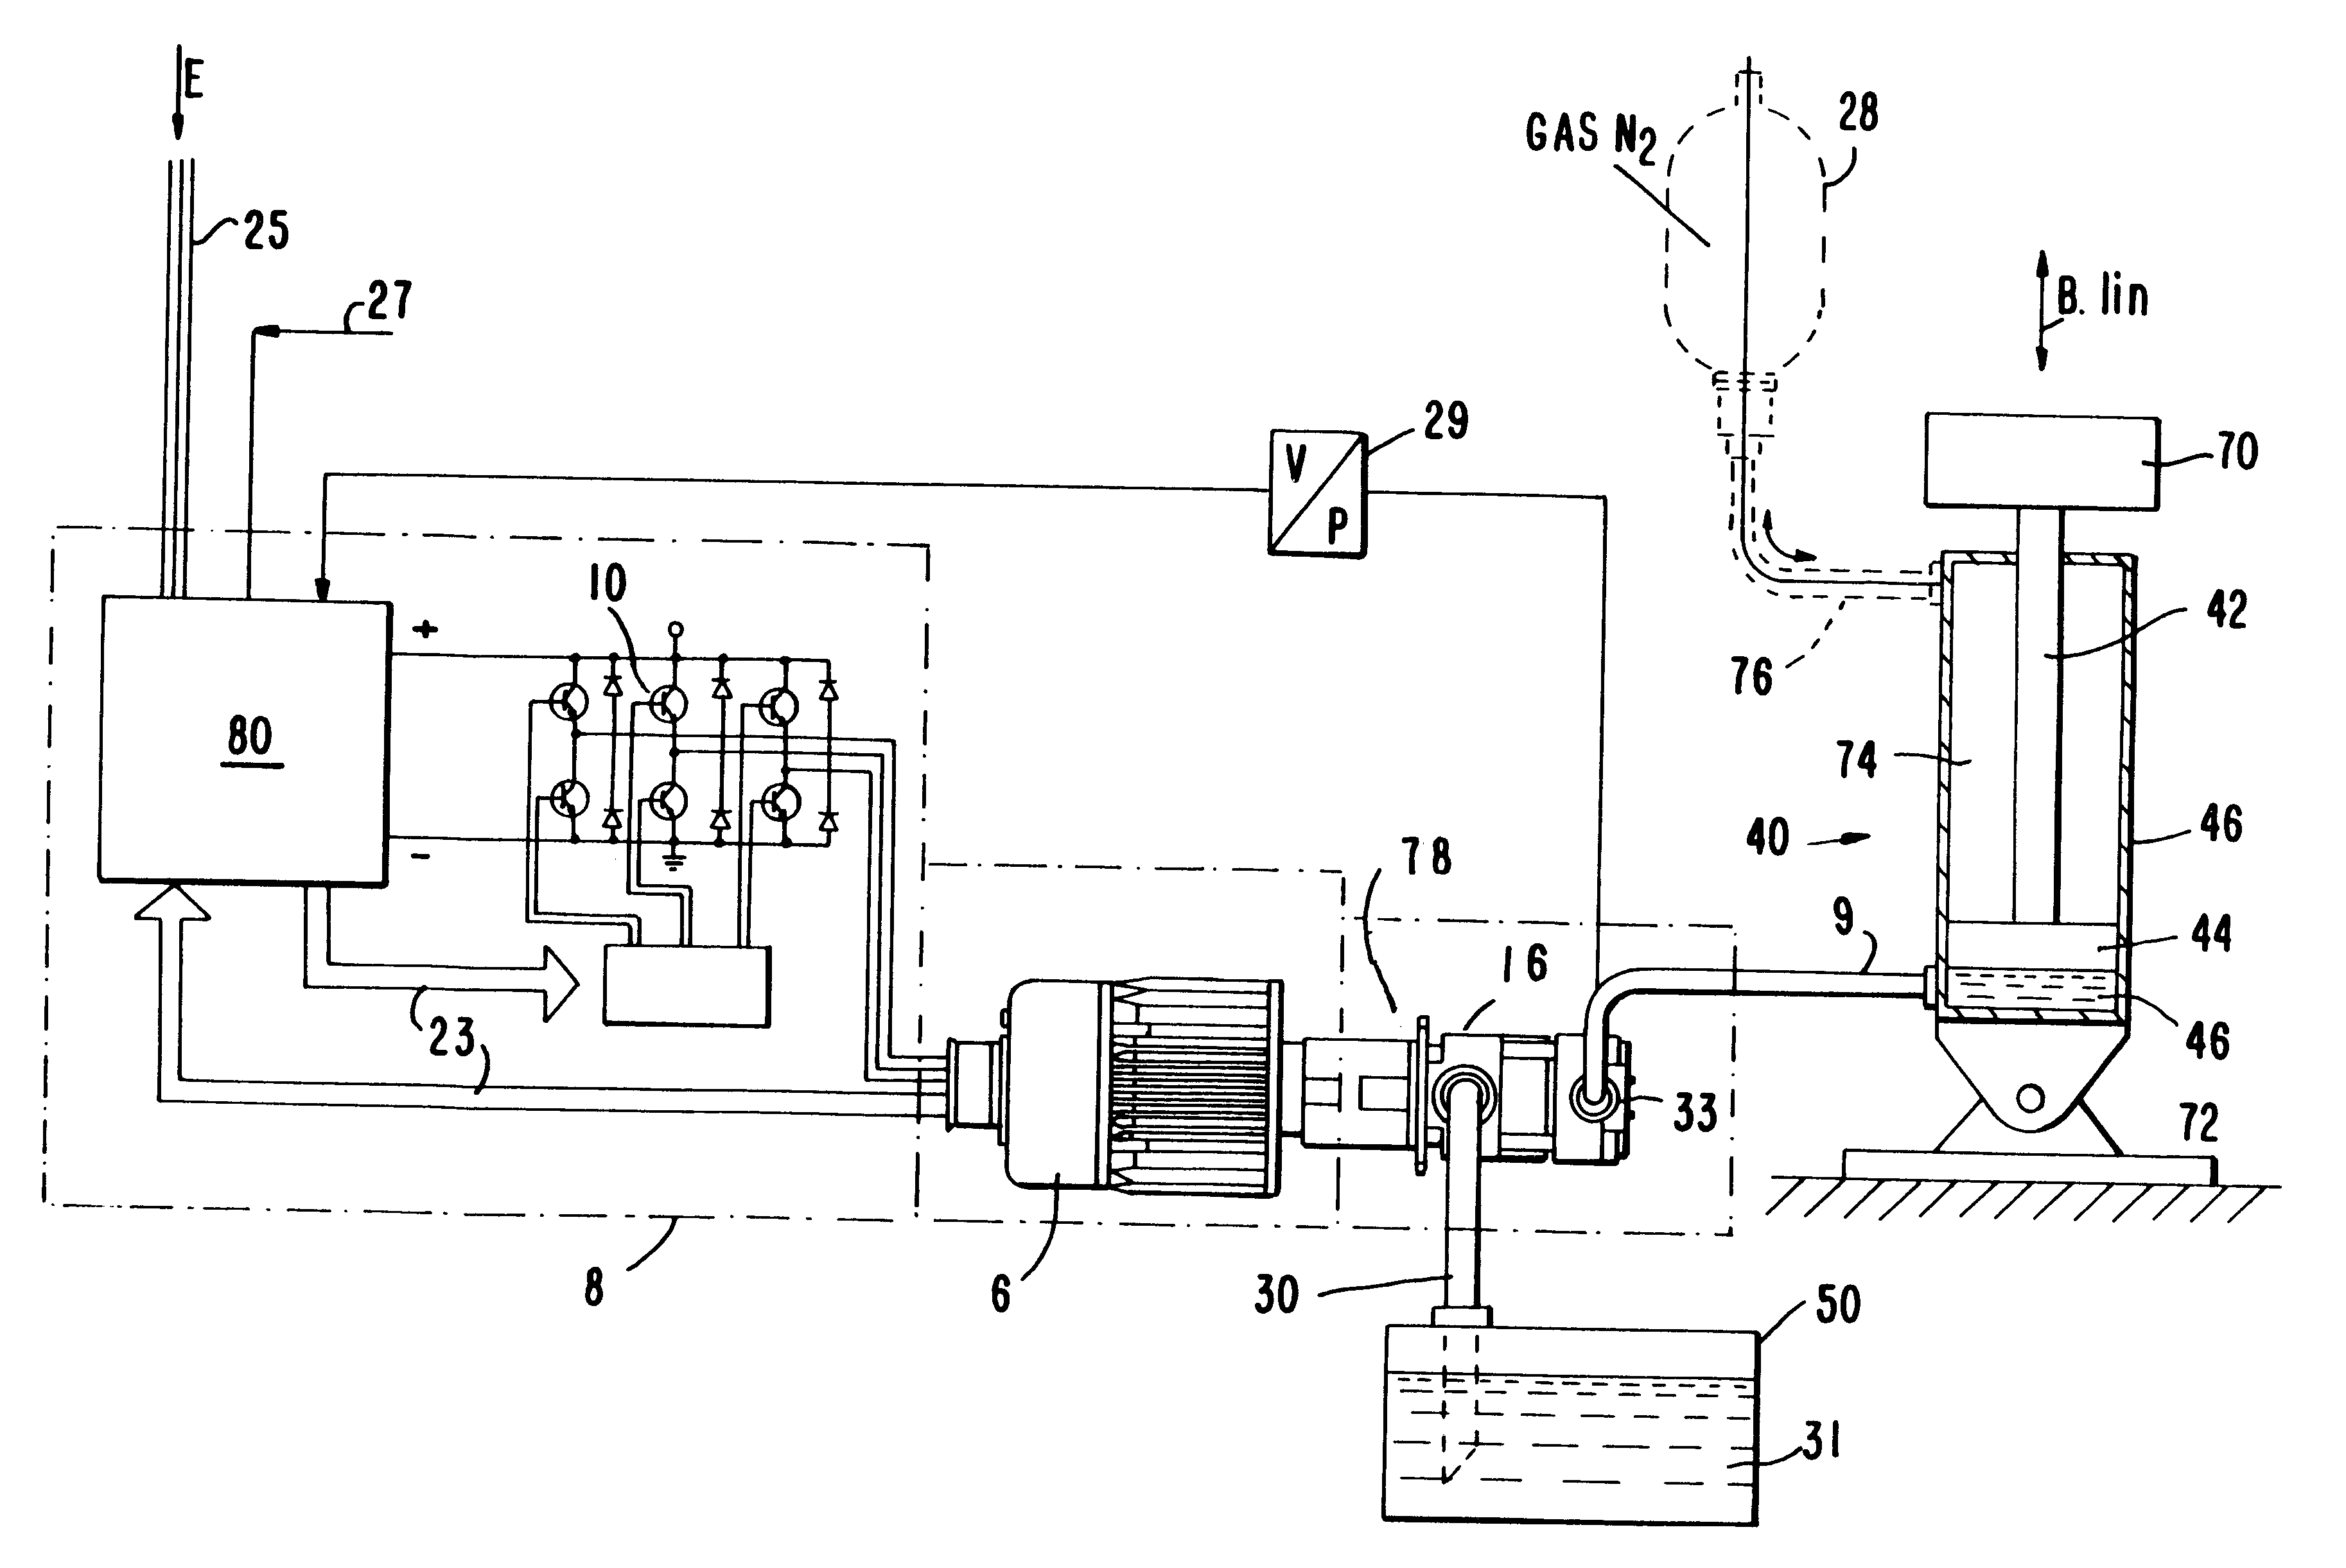 Hydraulic System Drawing : Patent us hybrid electric and hydraulic actuation